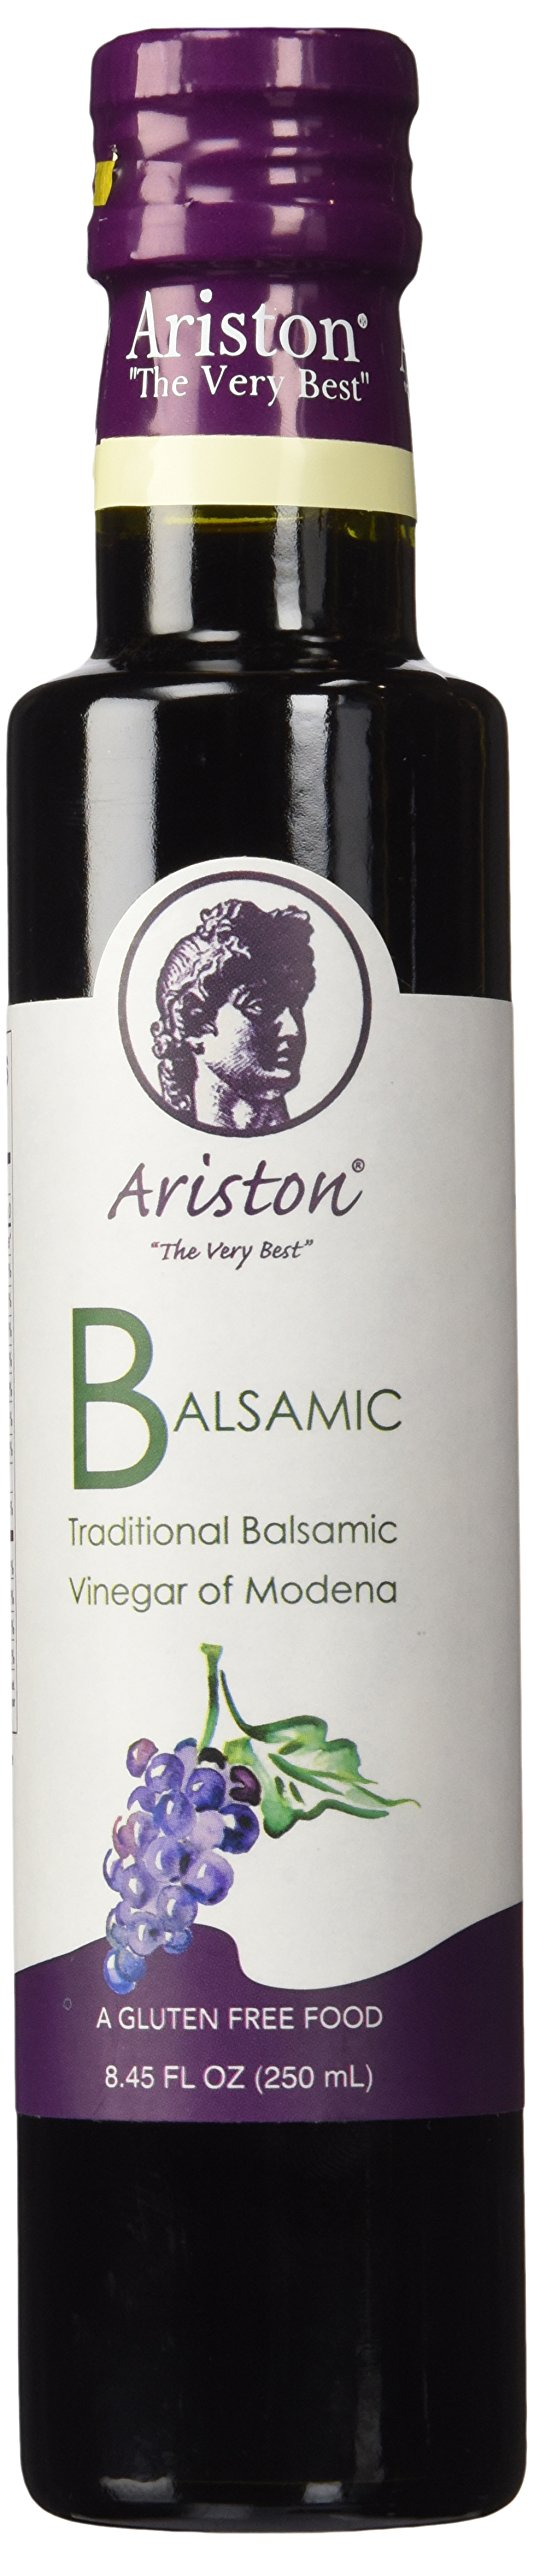 Ariston Traditional Modena Balsamic Vinegar 12 Years Aged (8.45 Oz - 250ml)(product of Italy)